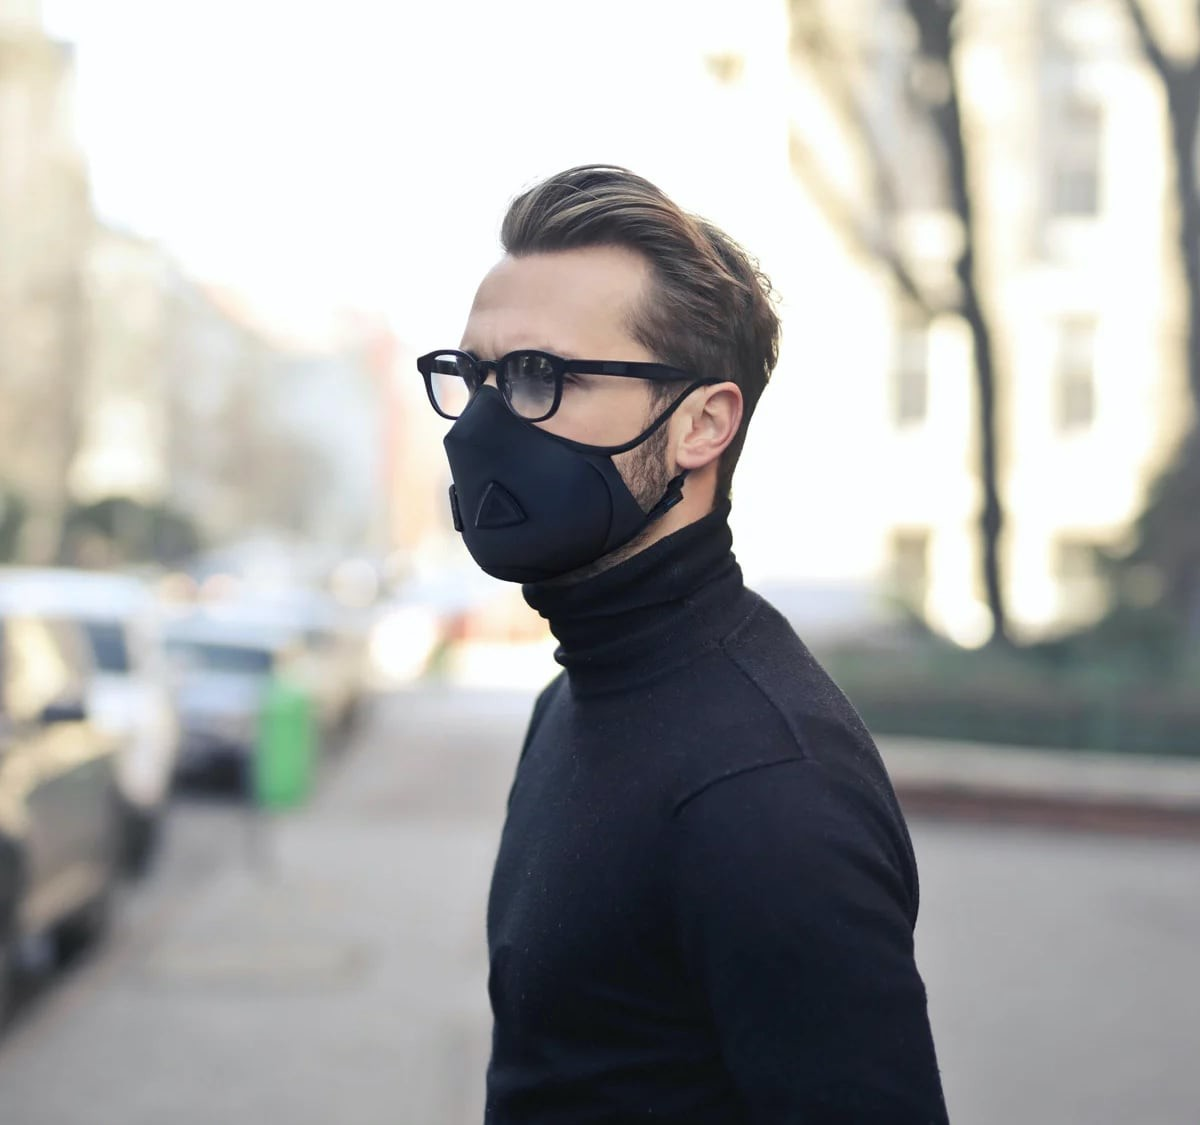 The Air Mask premium air filtration system consists of eco-friendly fabrics